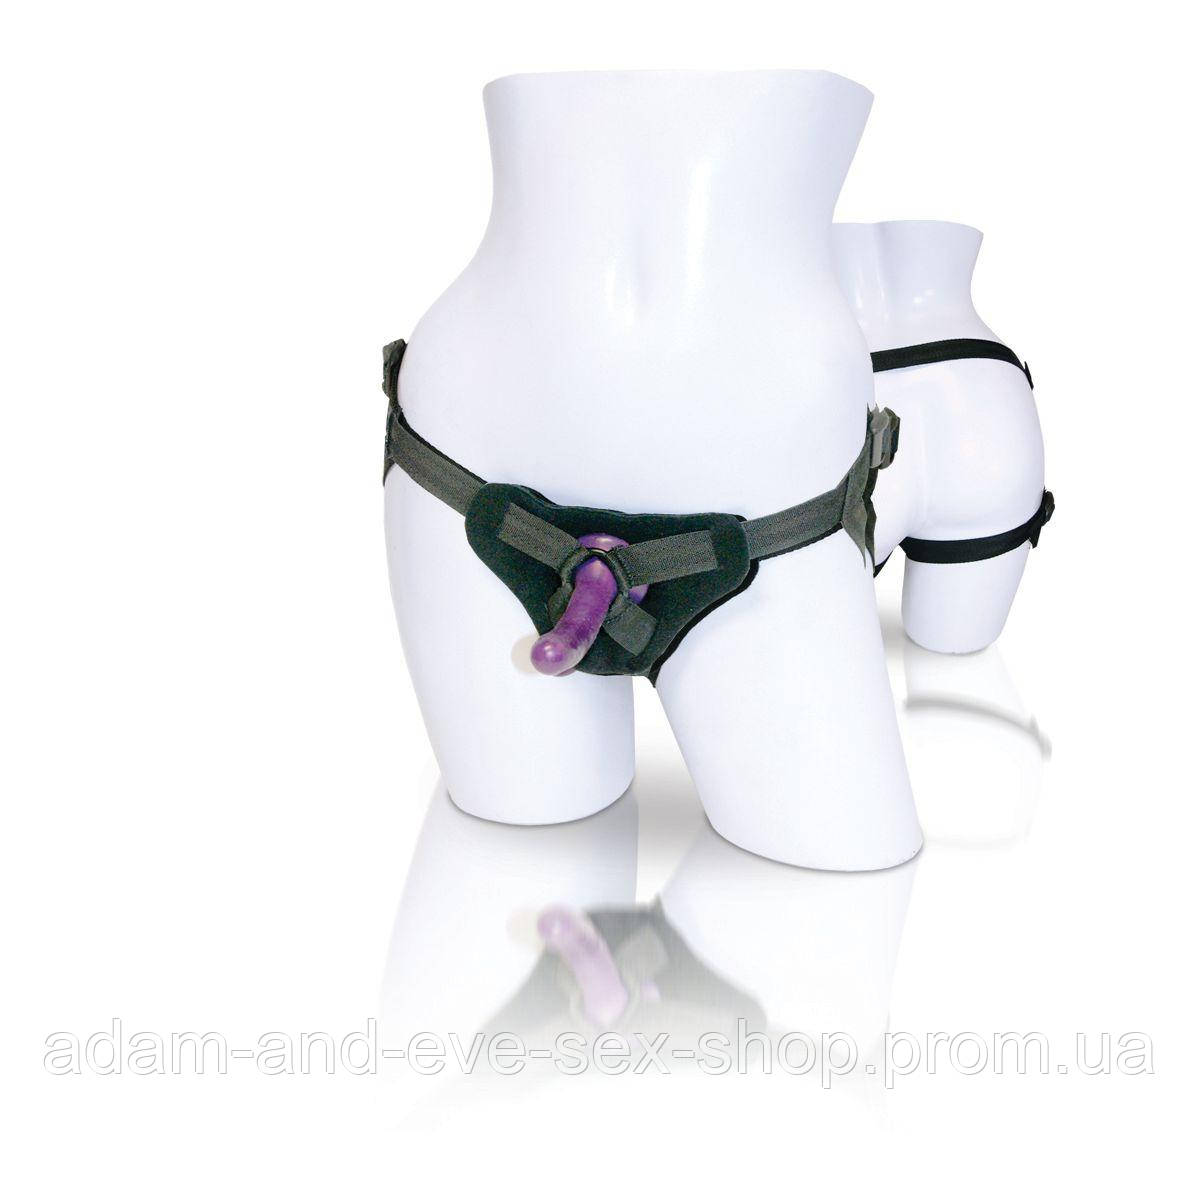 Страпон Sportsheets - New Comers Strap-on Kit